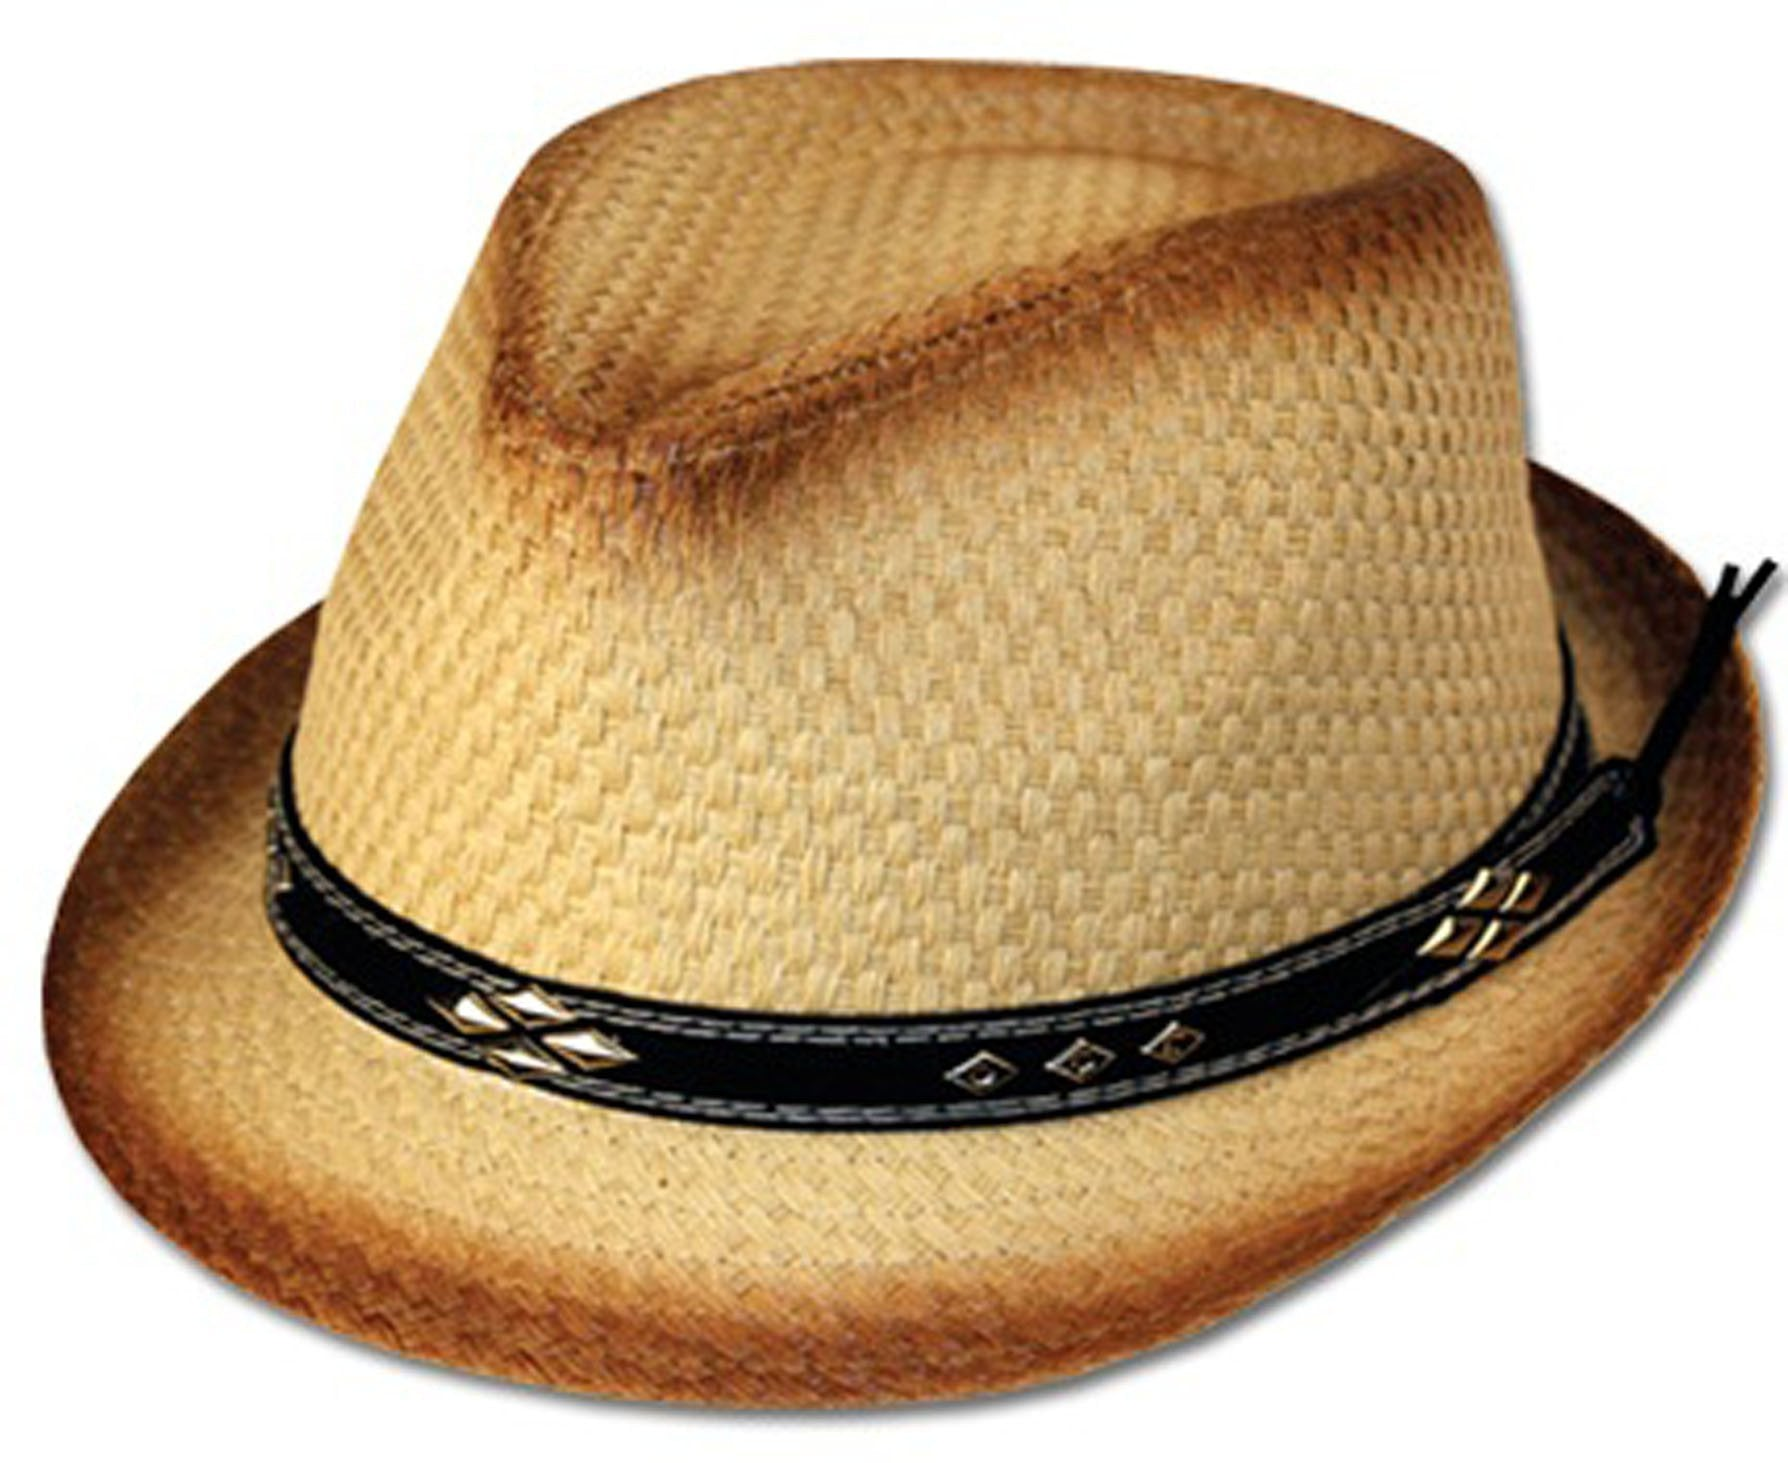 632393f64a649 Unisex Structured Ombre 100% Paper Straw Black Band Fedora Hat - Sakkas  Store